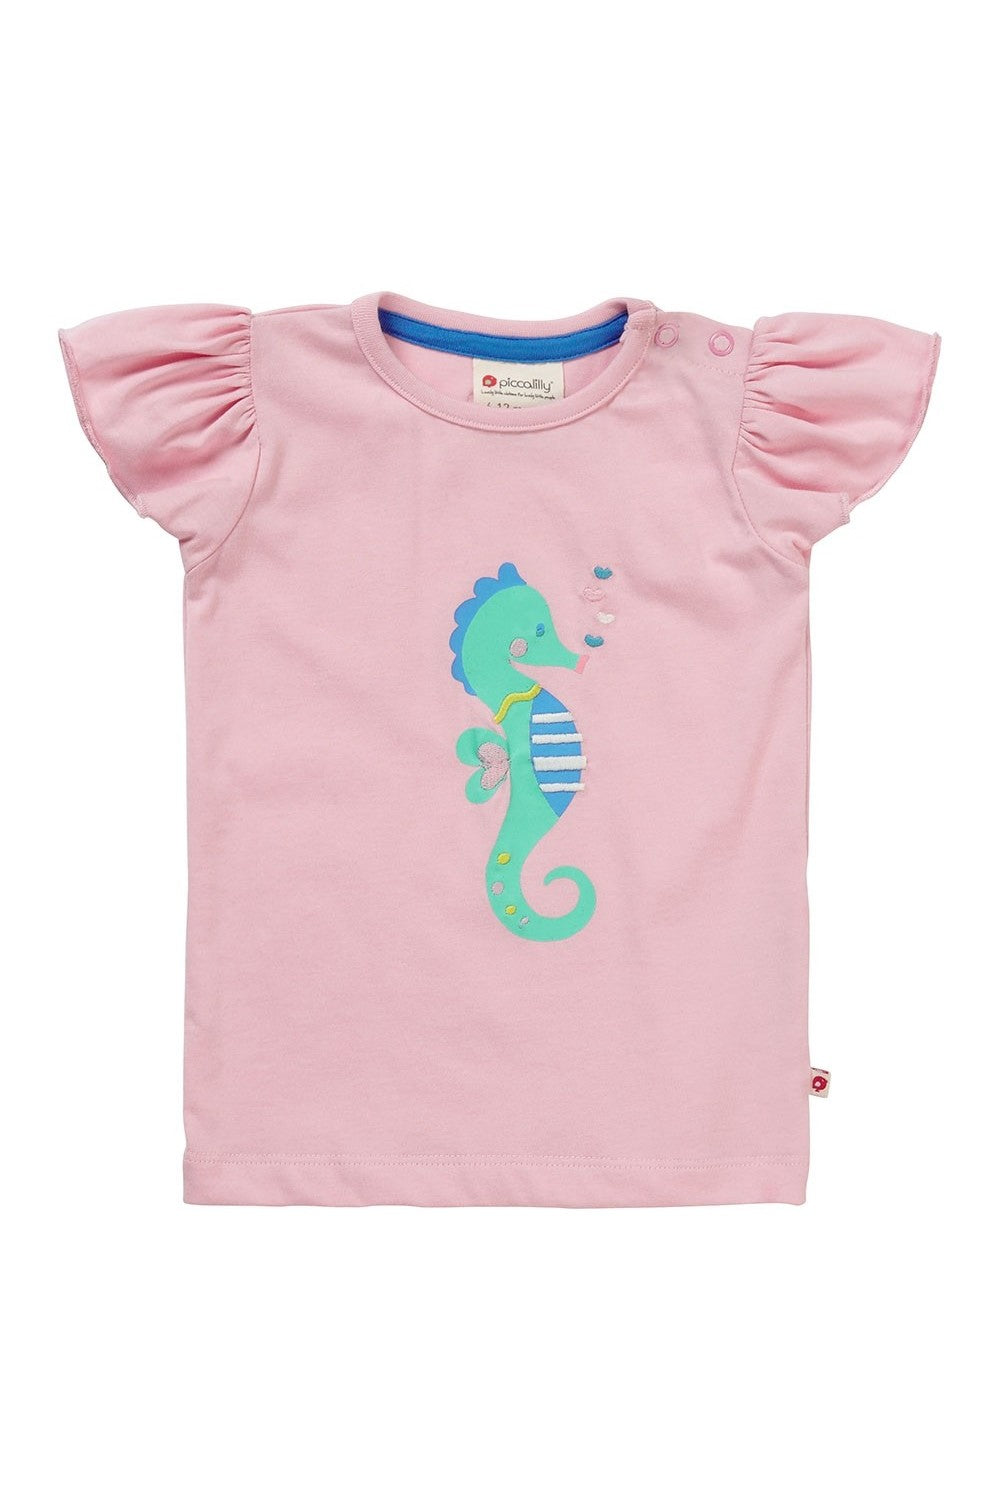 T-Shirt - Seahorse - Applique - Piccalilly Fashion - Snugglefox